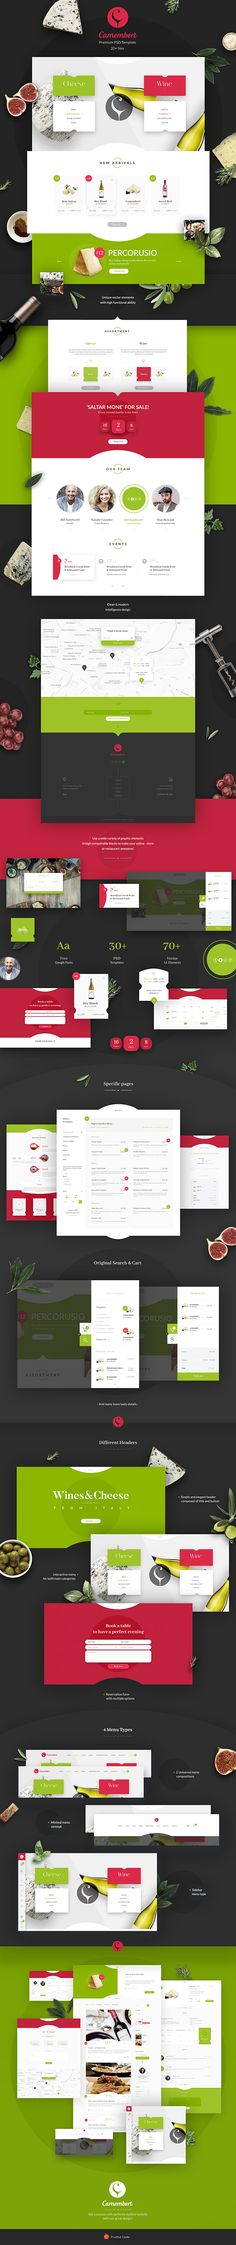 Here's a perfect theme for creating a website for a product presentation or a restaurant.